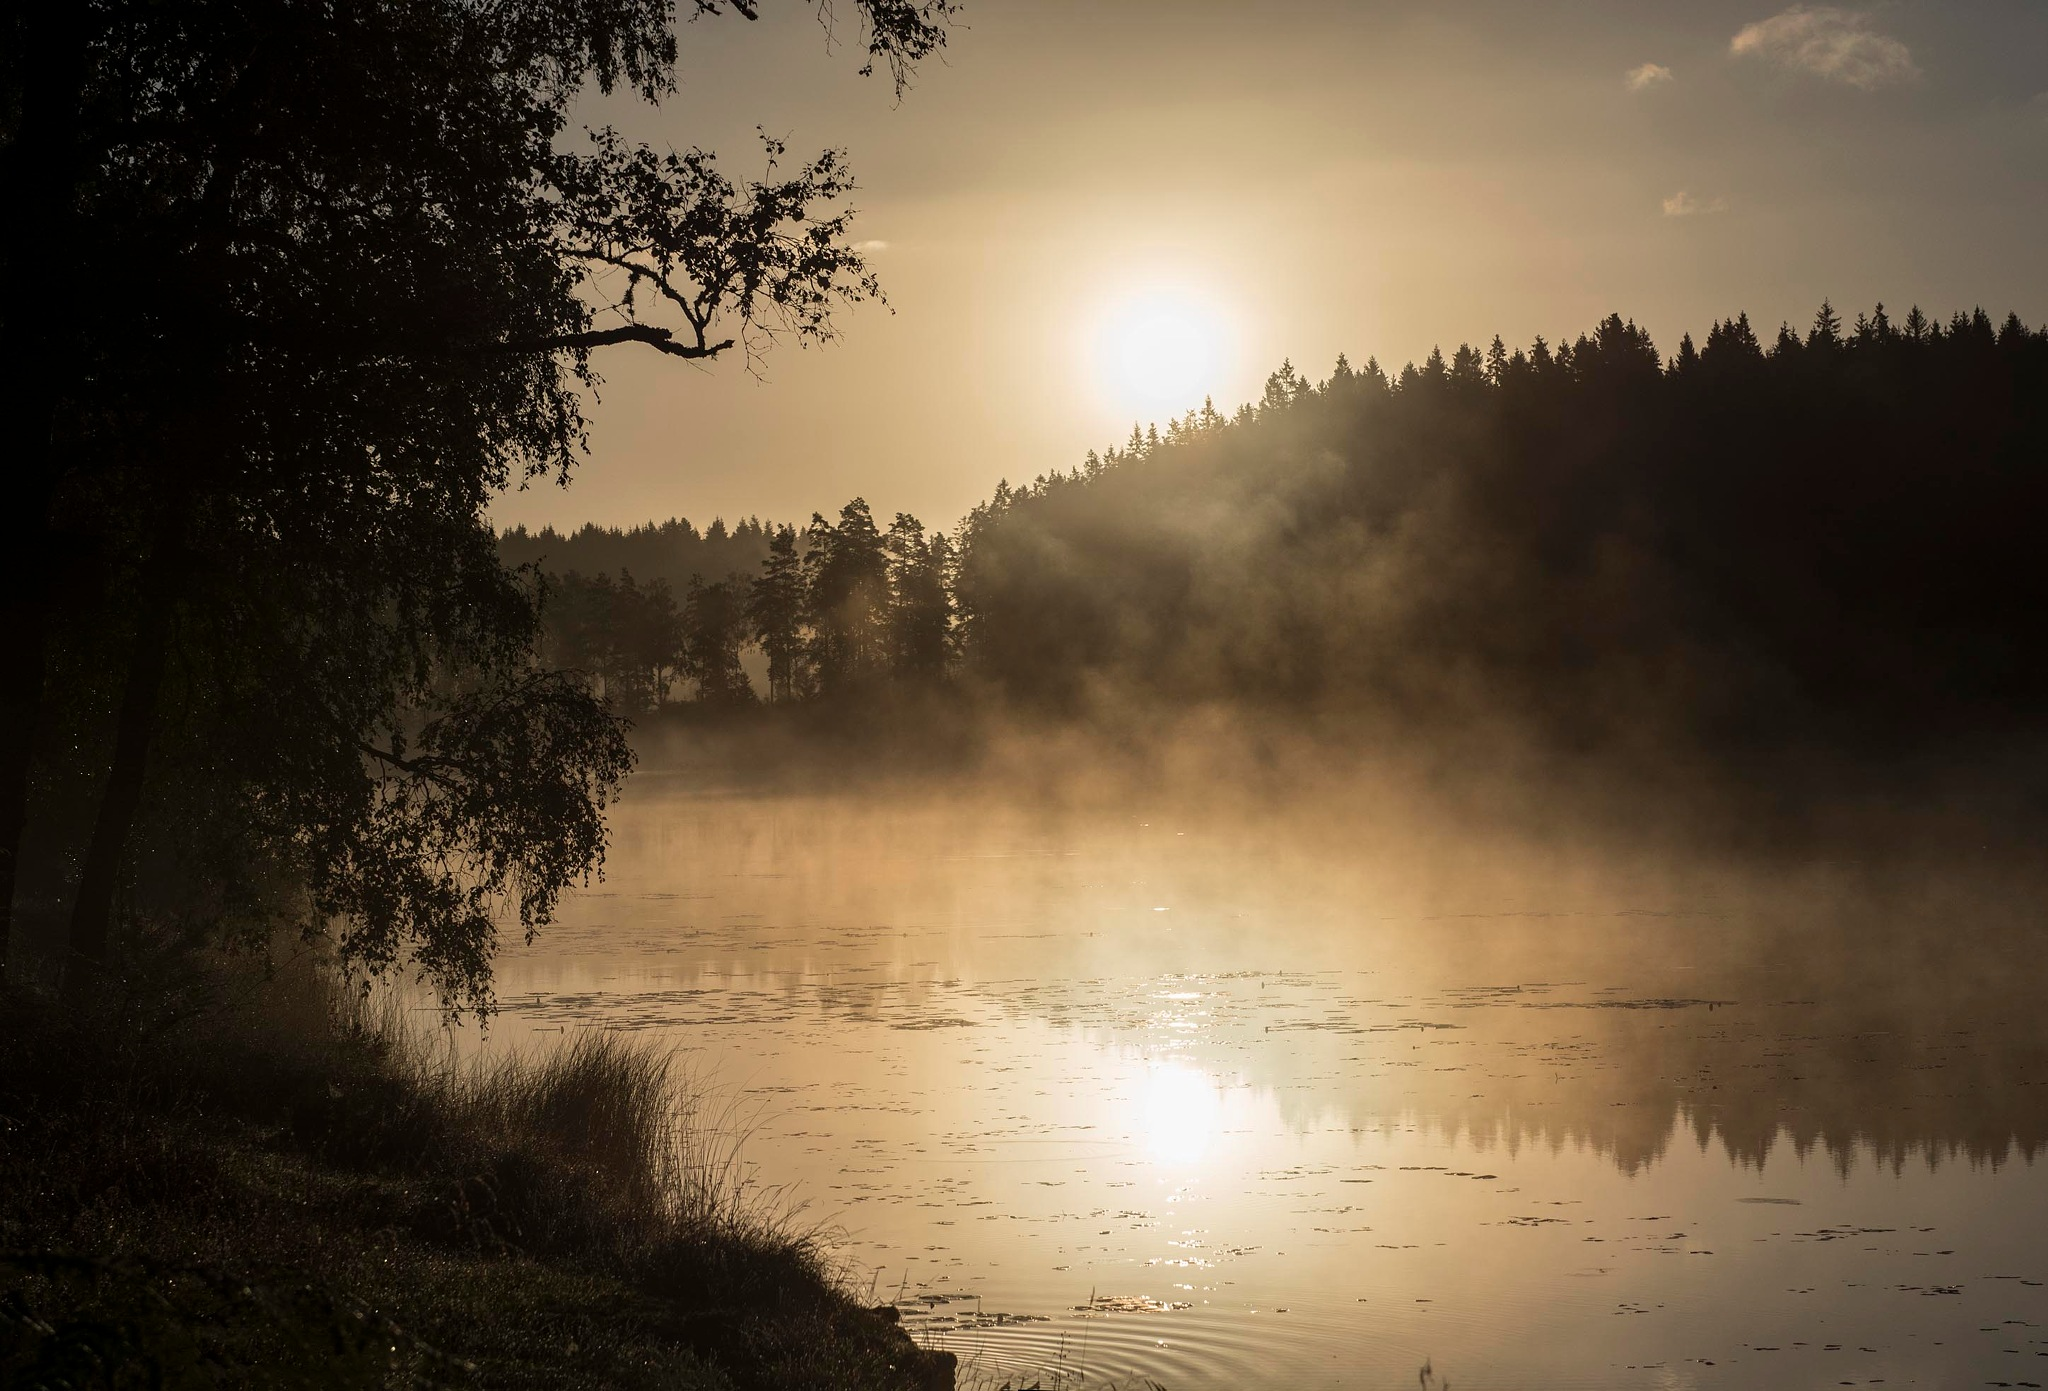 Sun and mist by Linda Persson